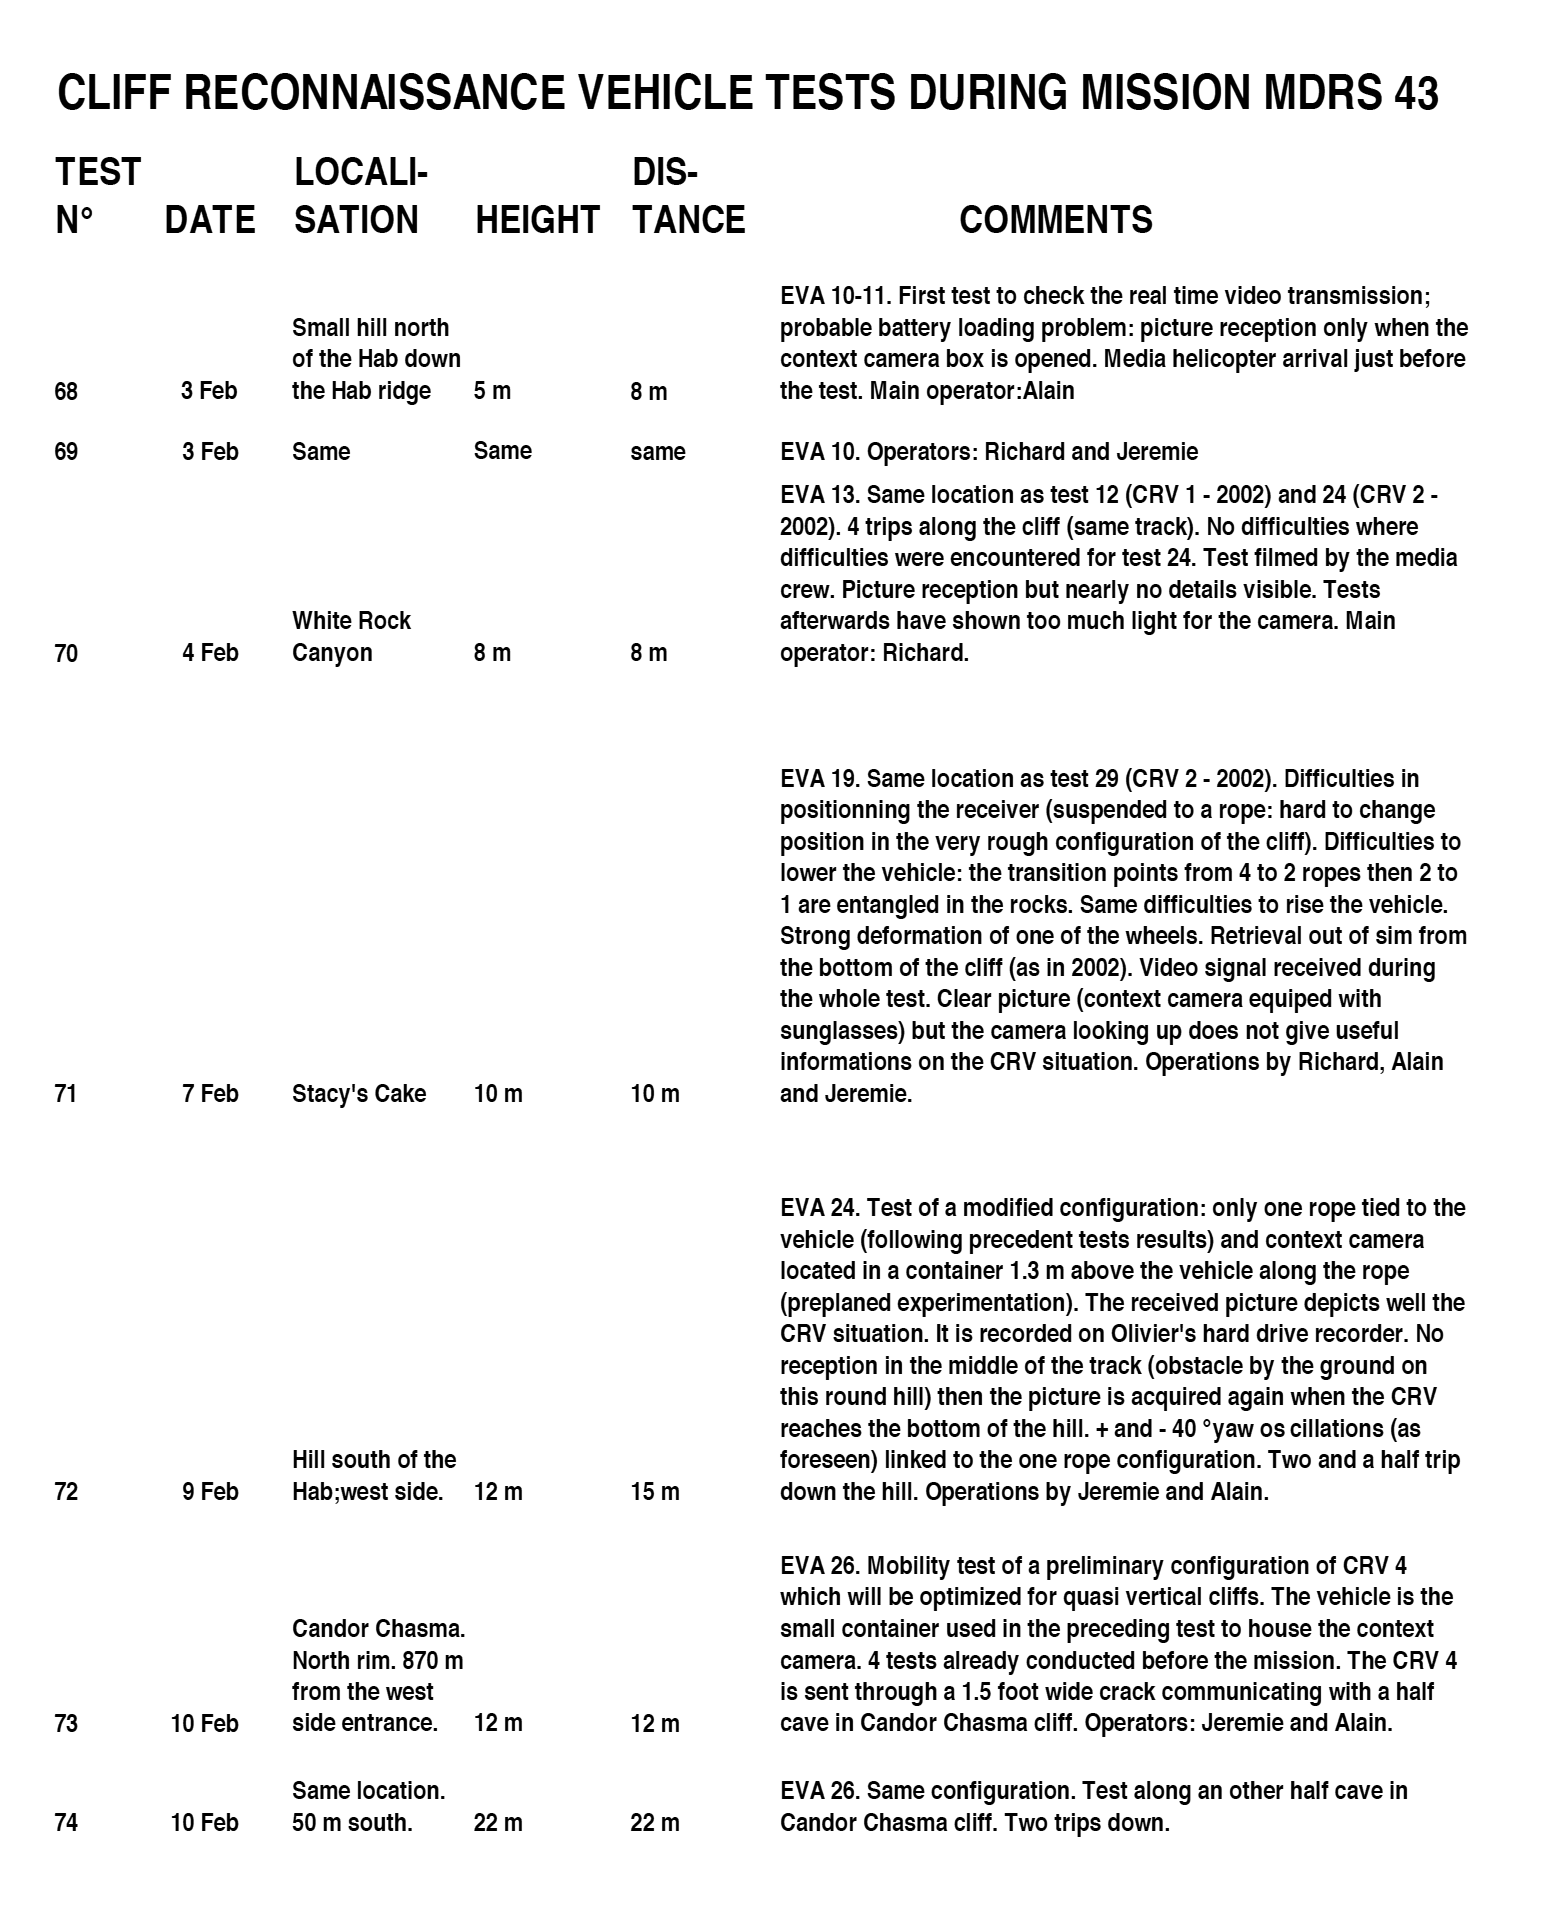 Example of CRV tests log book (mission MDRS 43 in Utah, February 2006)